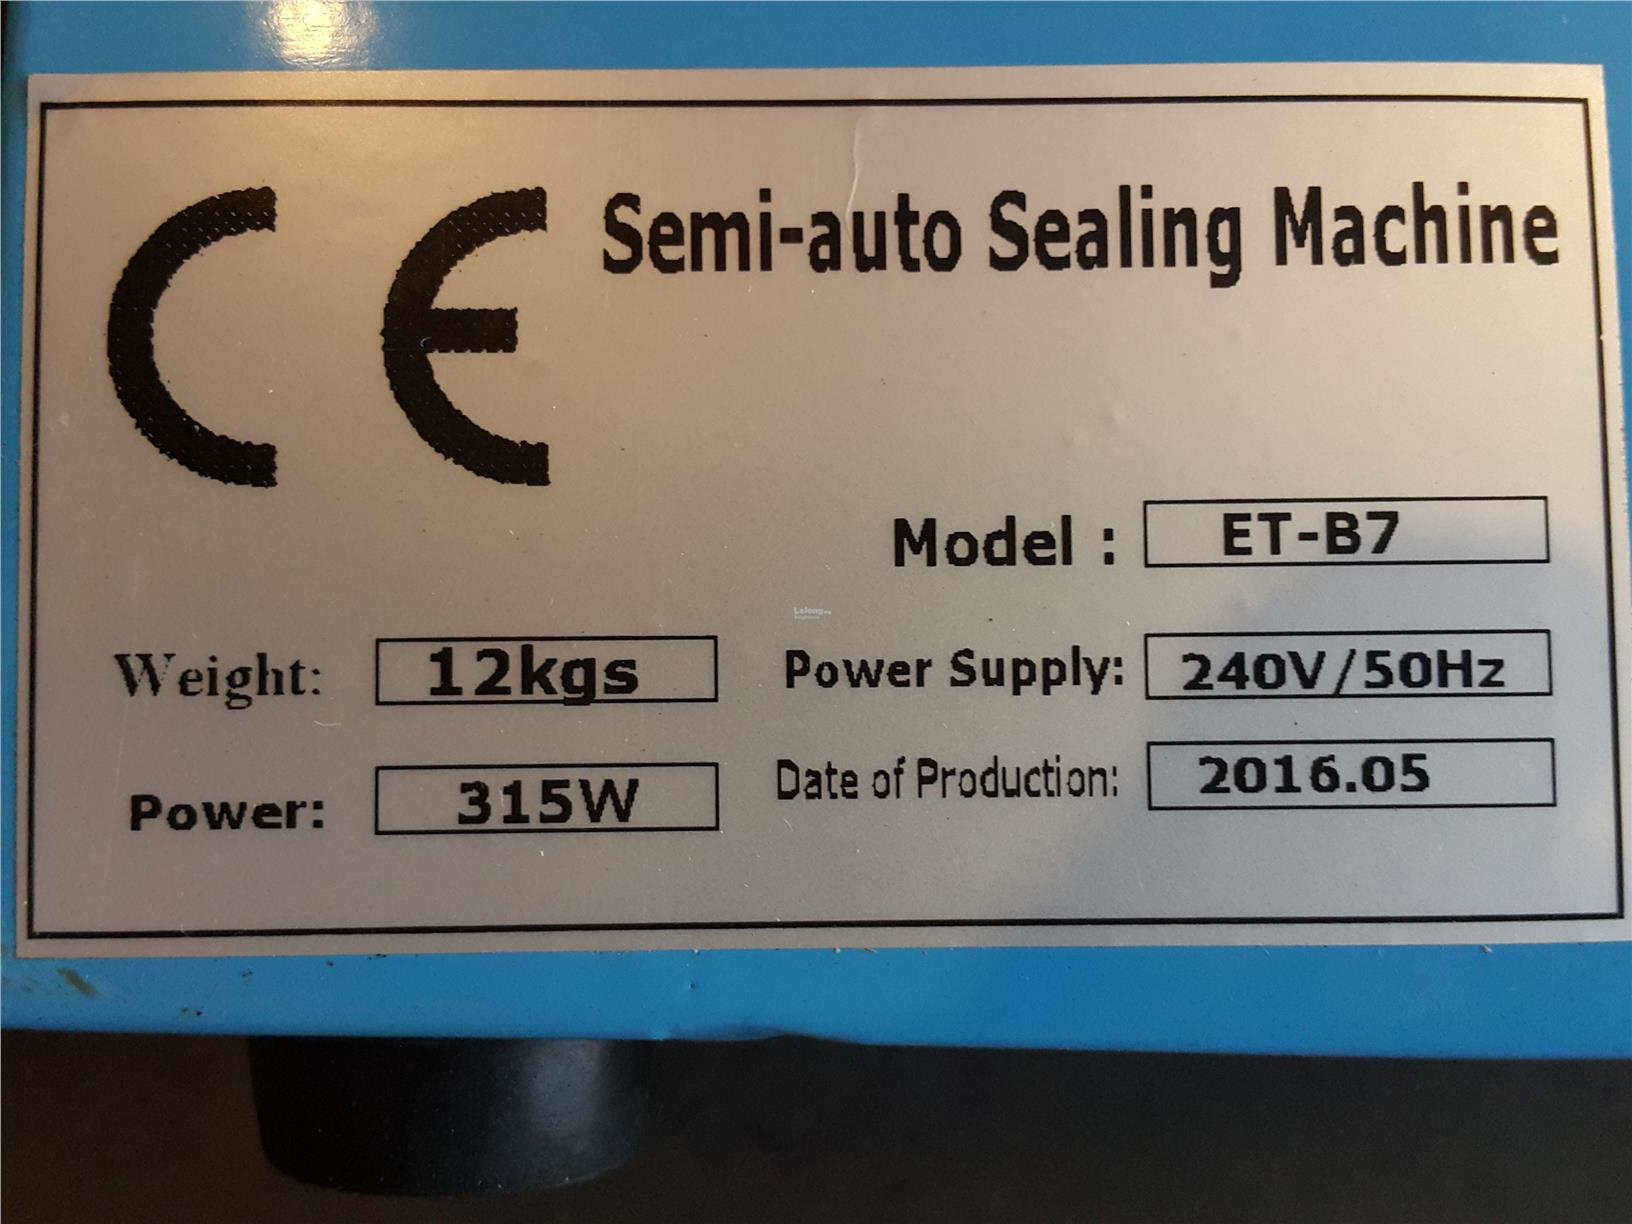 Semi-auto sealing machine with counter ID339163